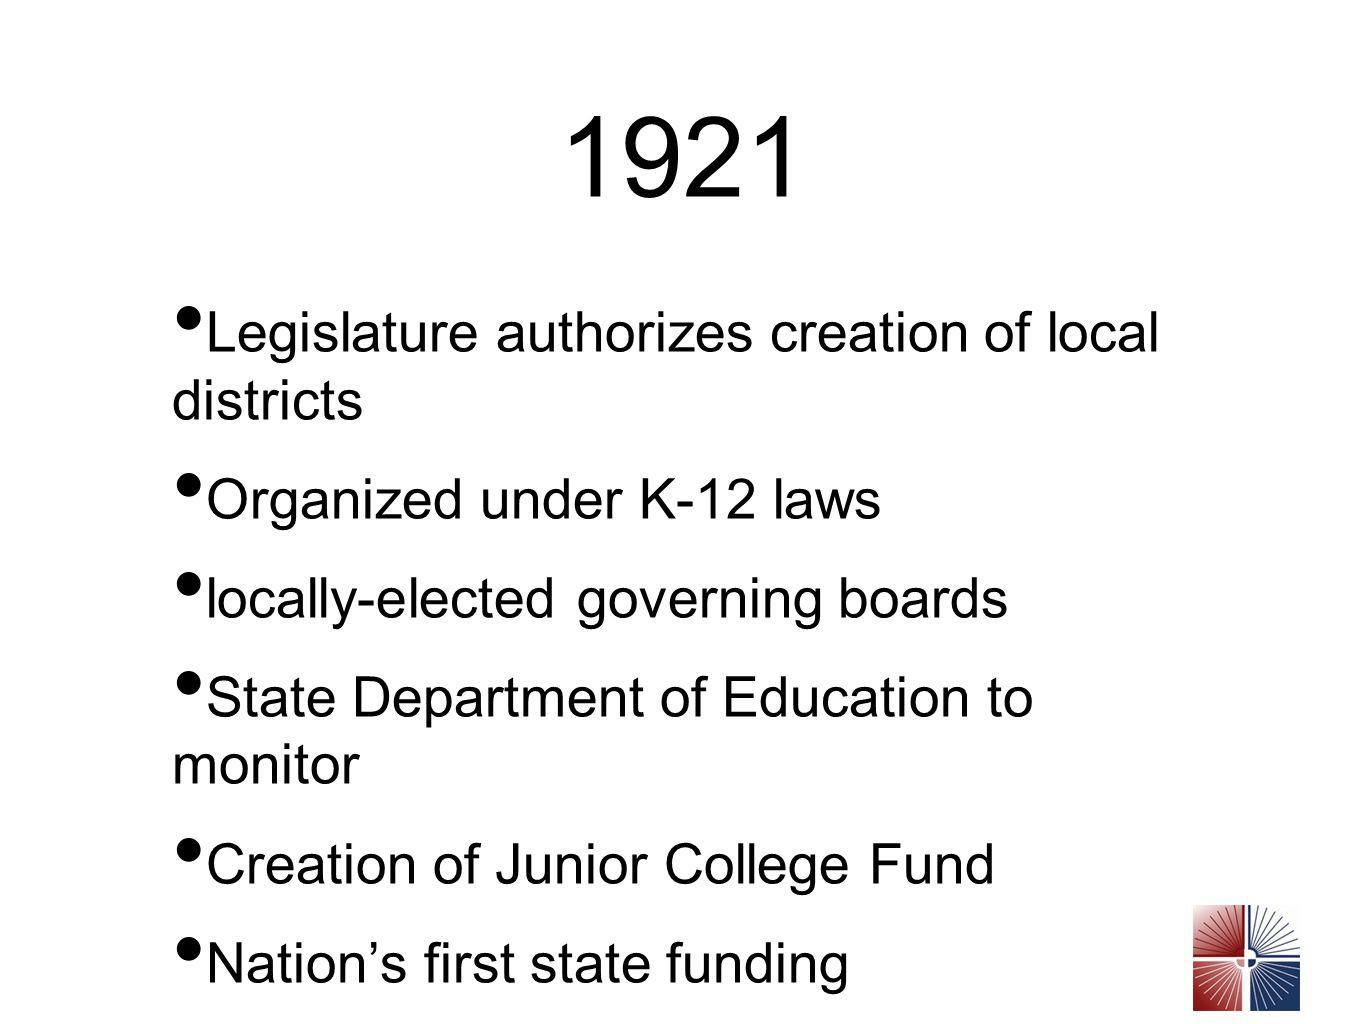 1921 Legislature authorizes creation of local districts Organized under K-12 laws locally-elected governing boards State Department of Education to monitor Creation of Junior College Fund Nations first state funding